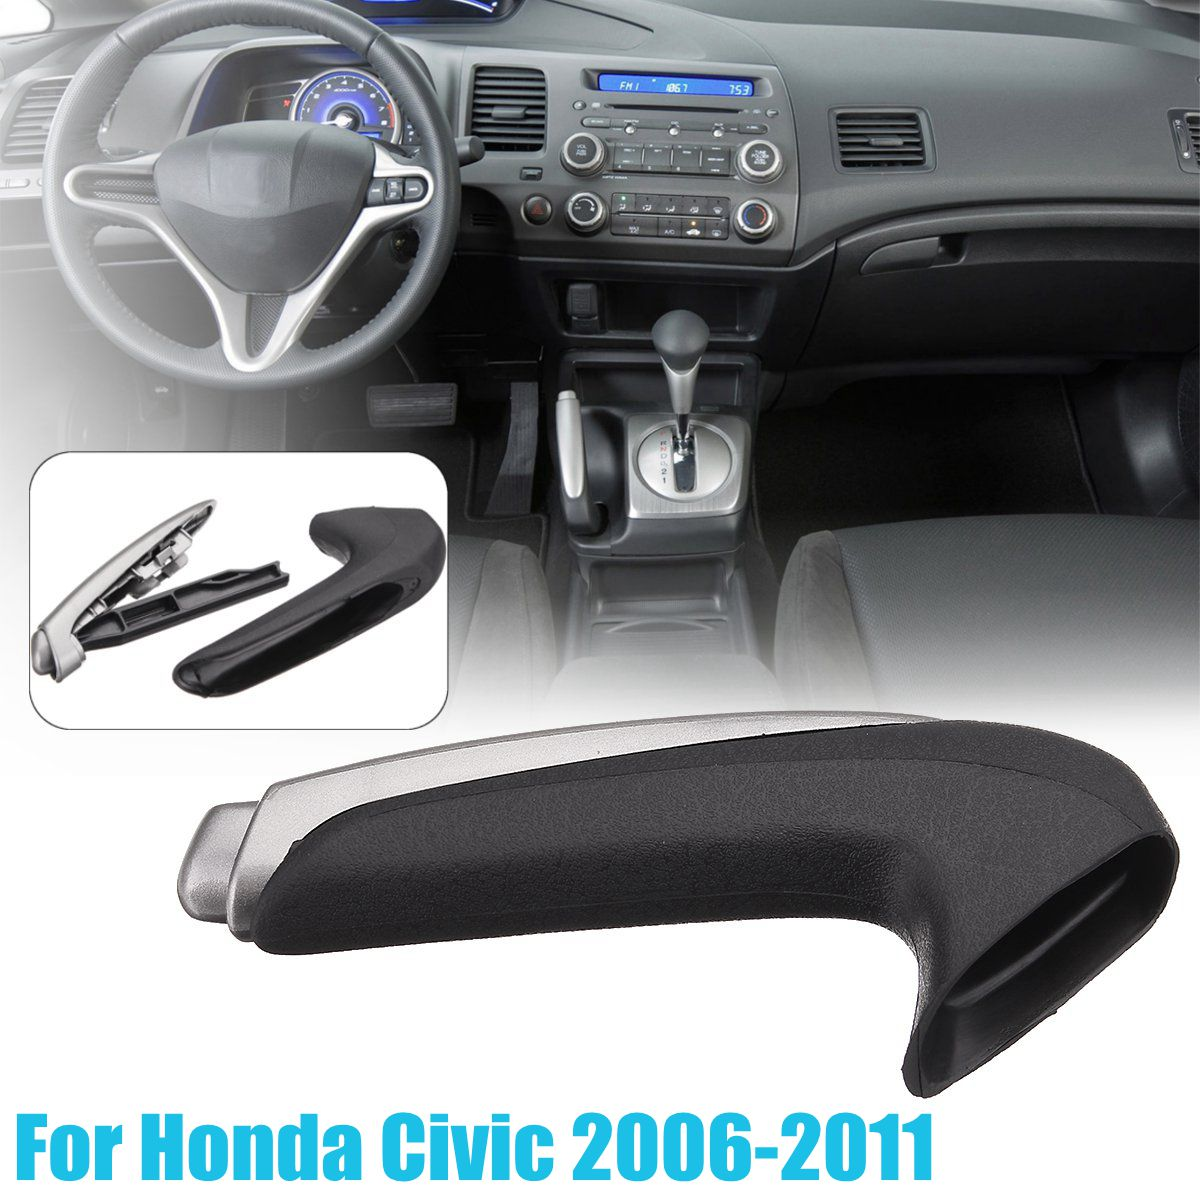 Handle Cover Emergency Car Interior Parking Hand Brake Handle Lever Grip Cover For Honda for Civic 2006-2011 цены